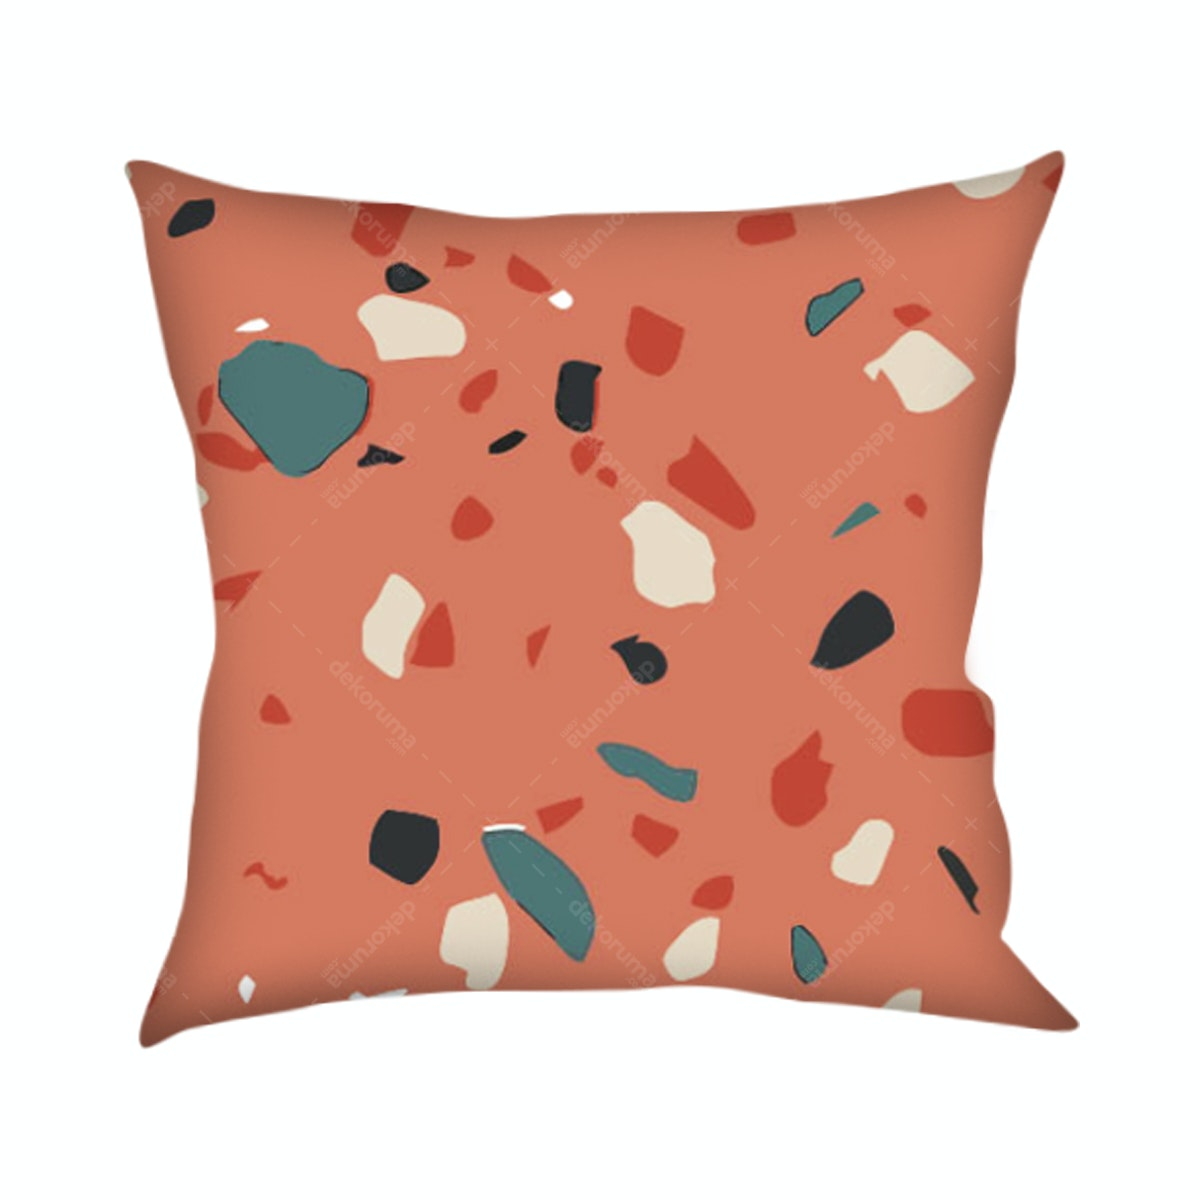 On&On Terrazzo 1 Cushion 40x40cm (Insert+Cover)